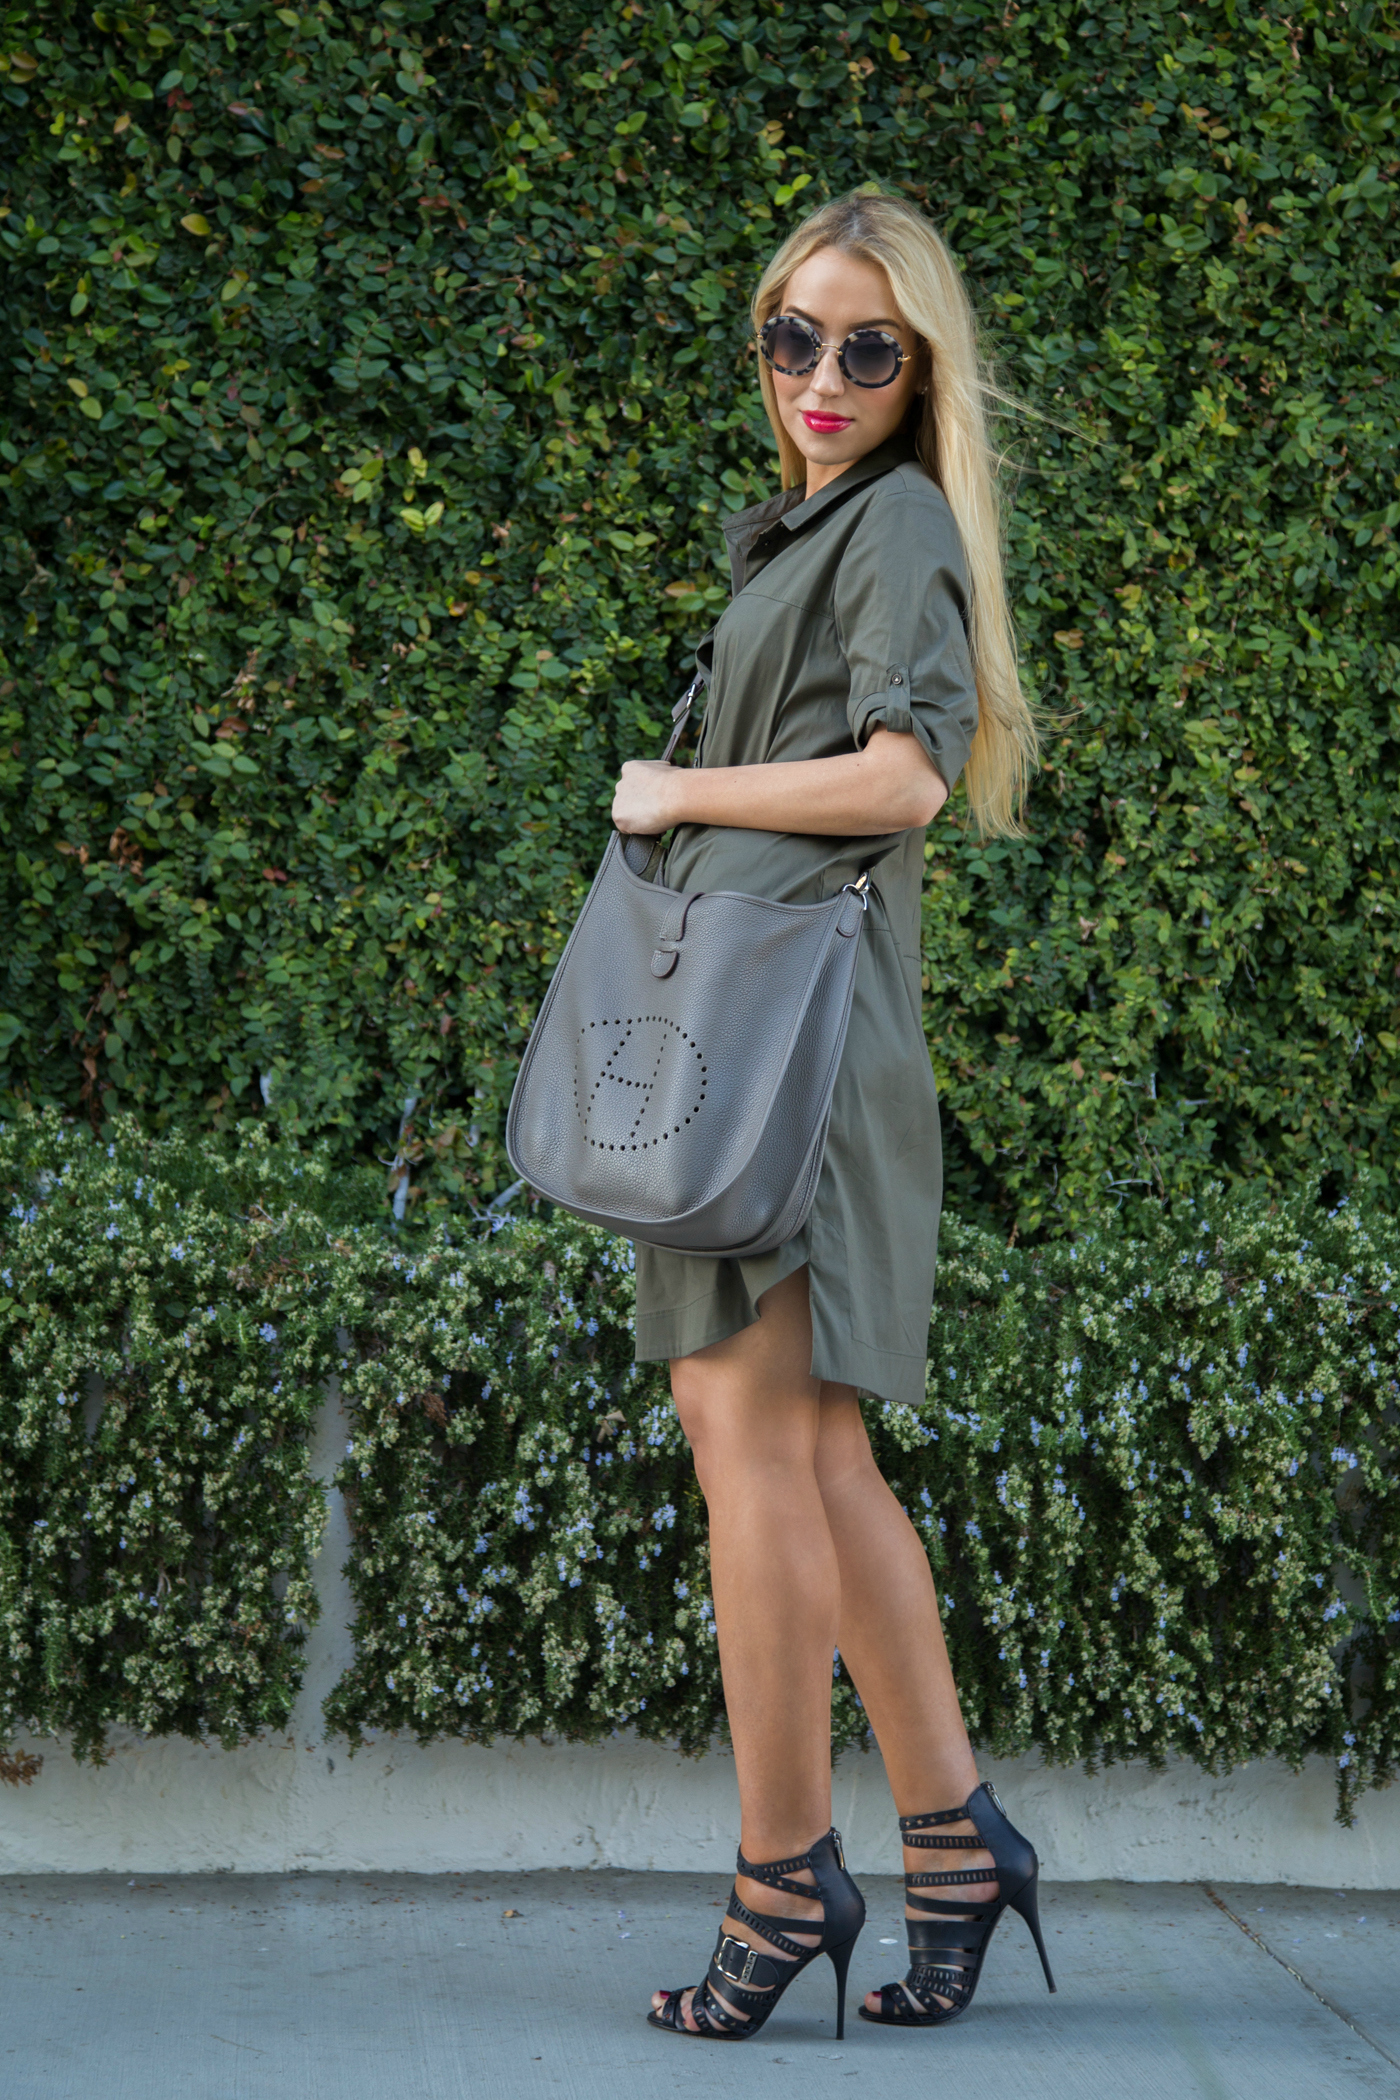 zara shirt dress,zara dress,balmain shoes,evelyne bag,shirt dress,taupe bag